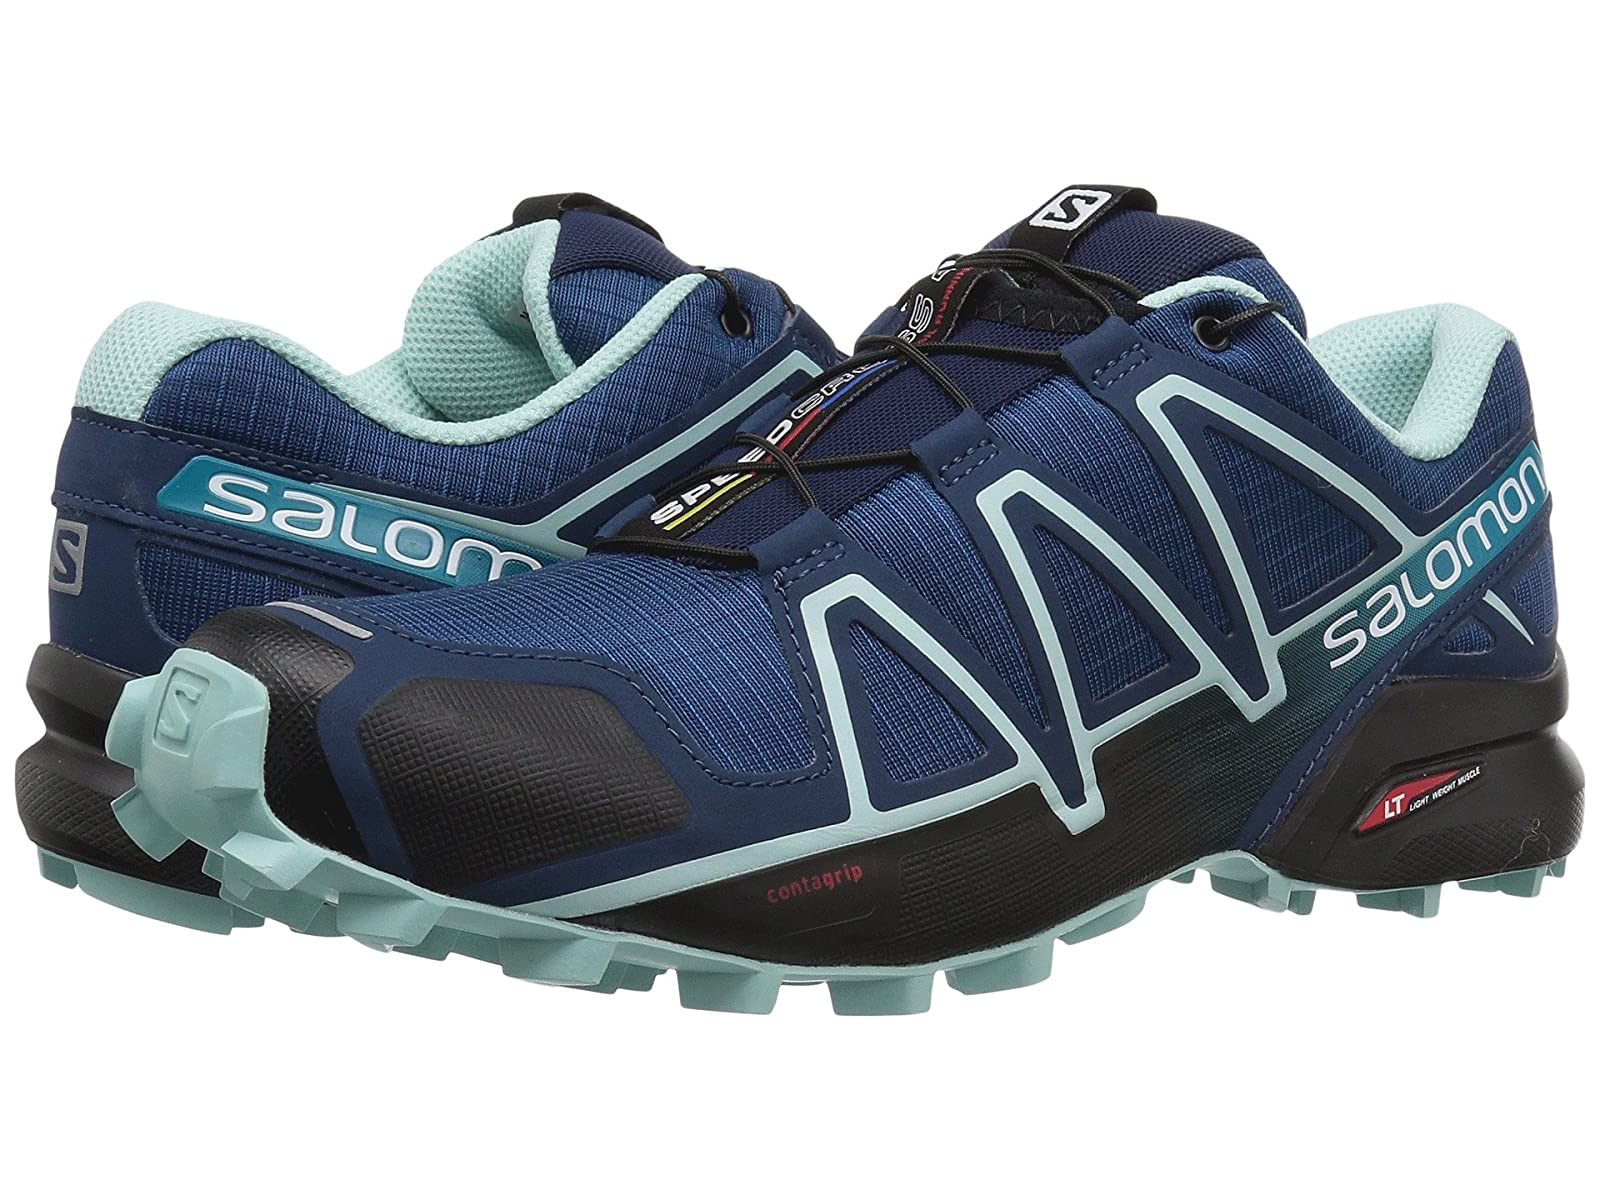 Salomon Speedcross 4Atmospheric grades have affordable shoes